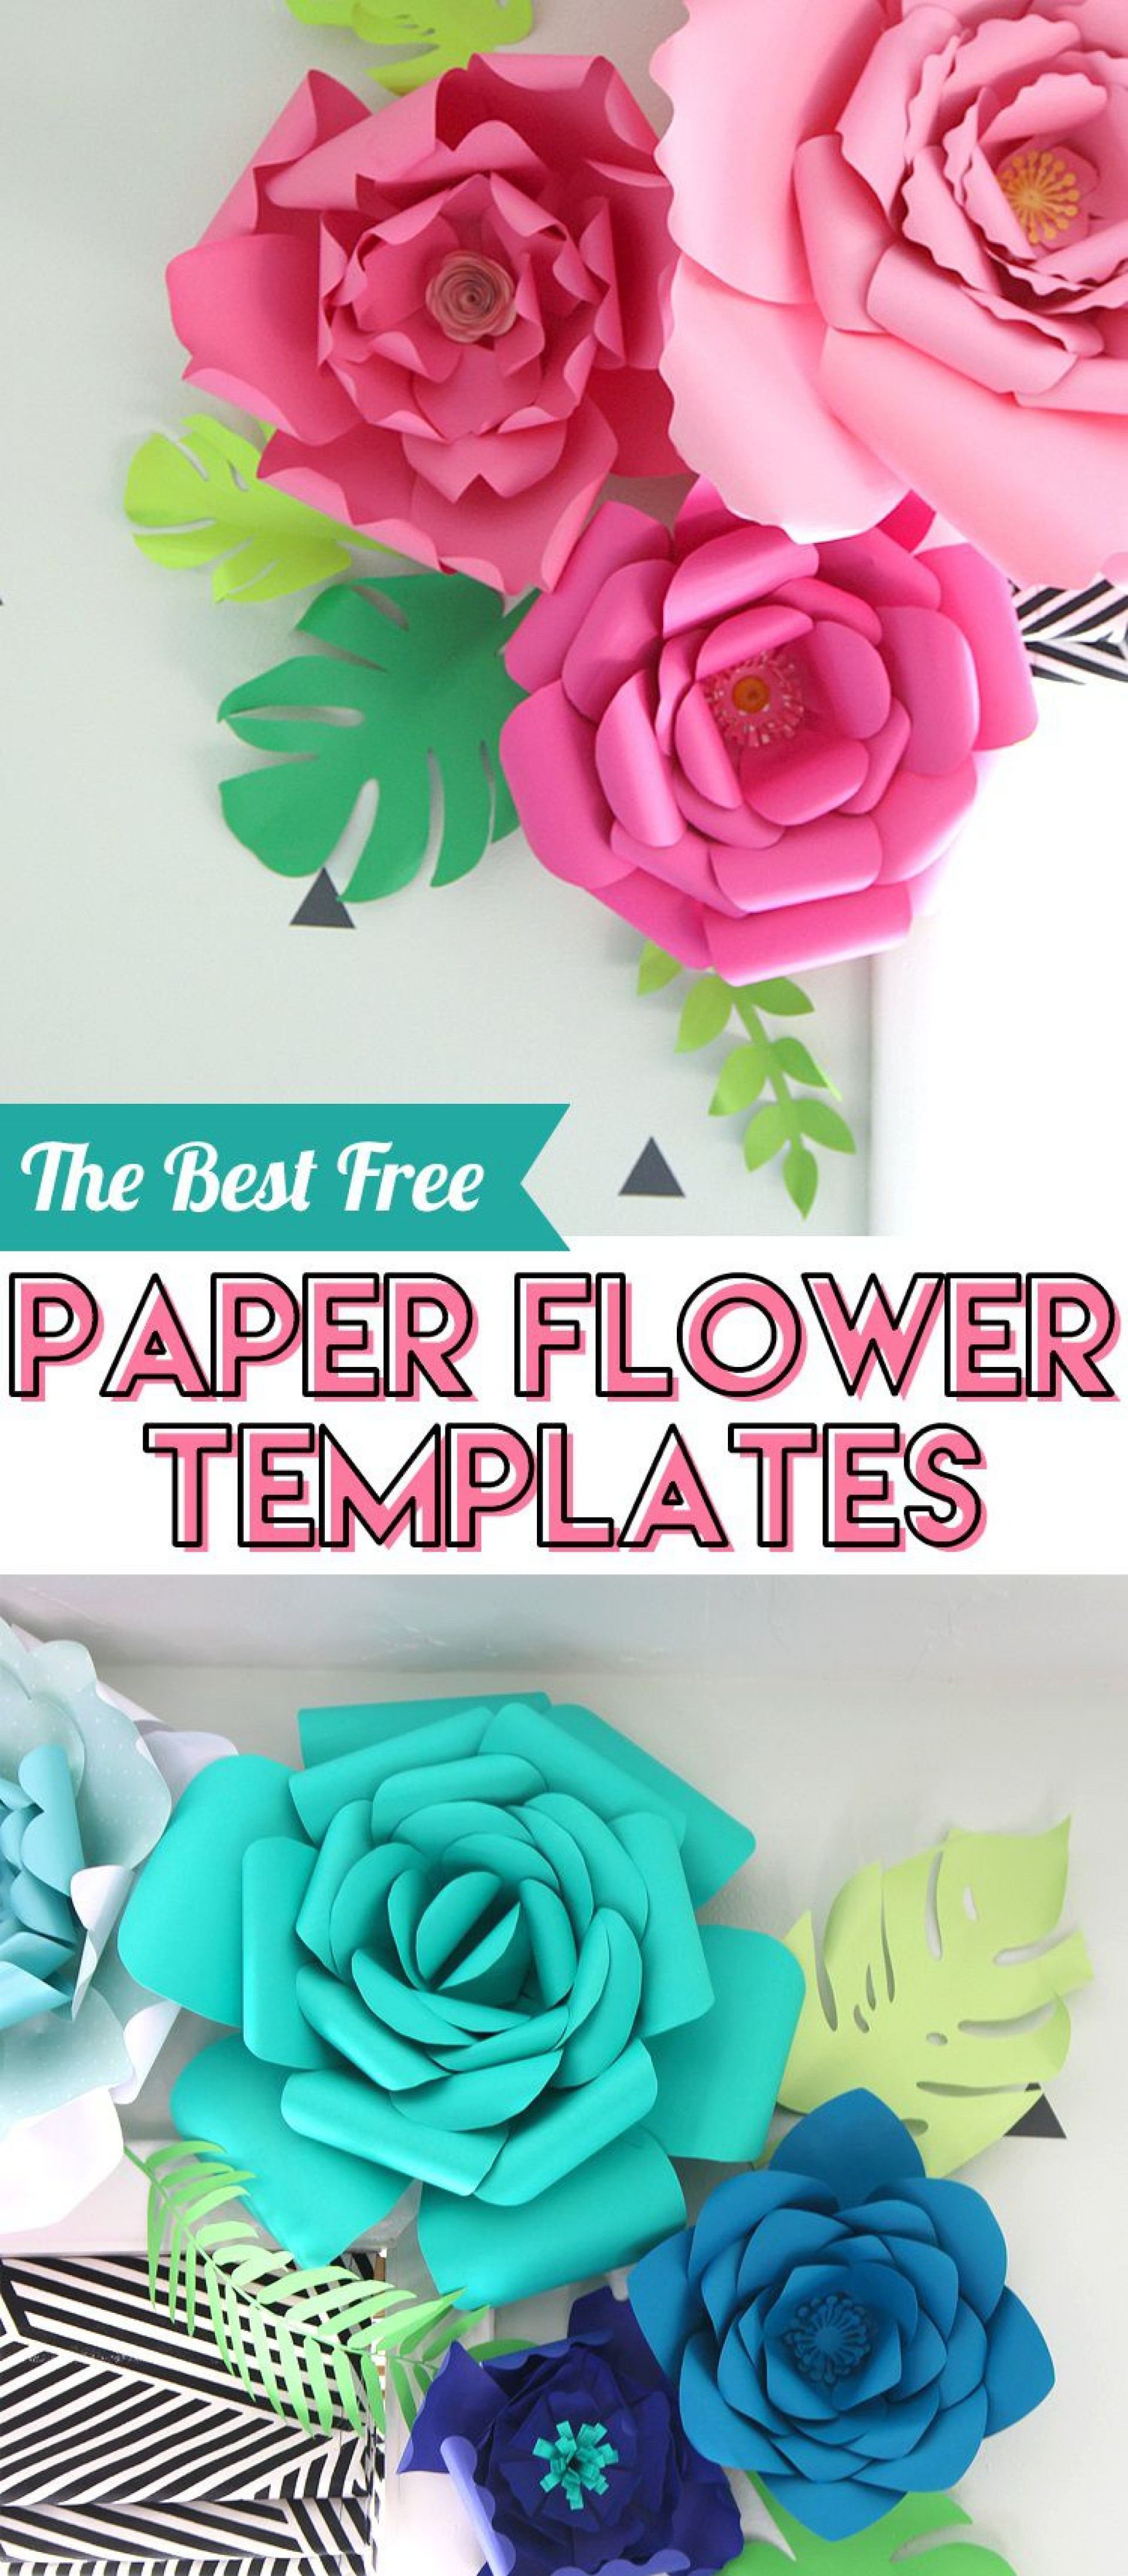 008 Marvelou Giant Rose Paper Flower Template Free Inspiration 1920